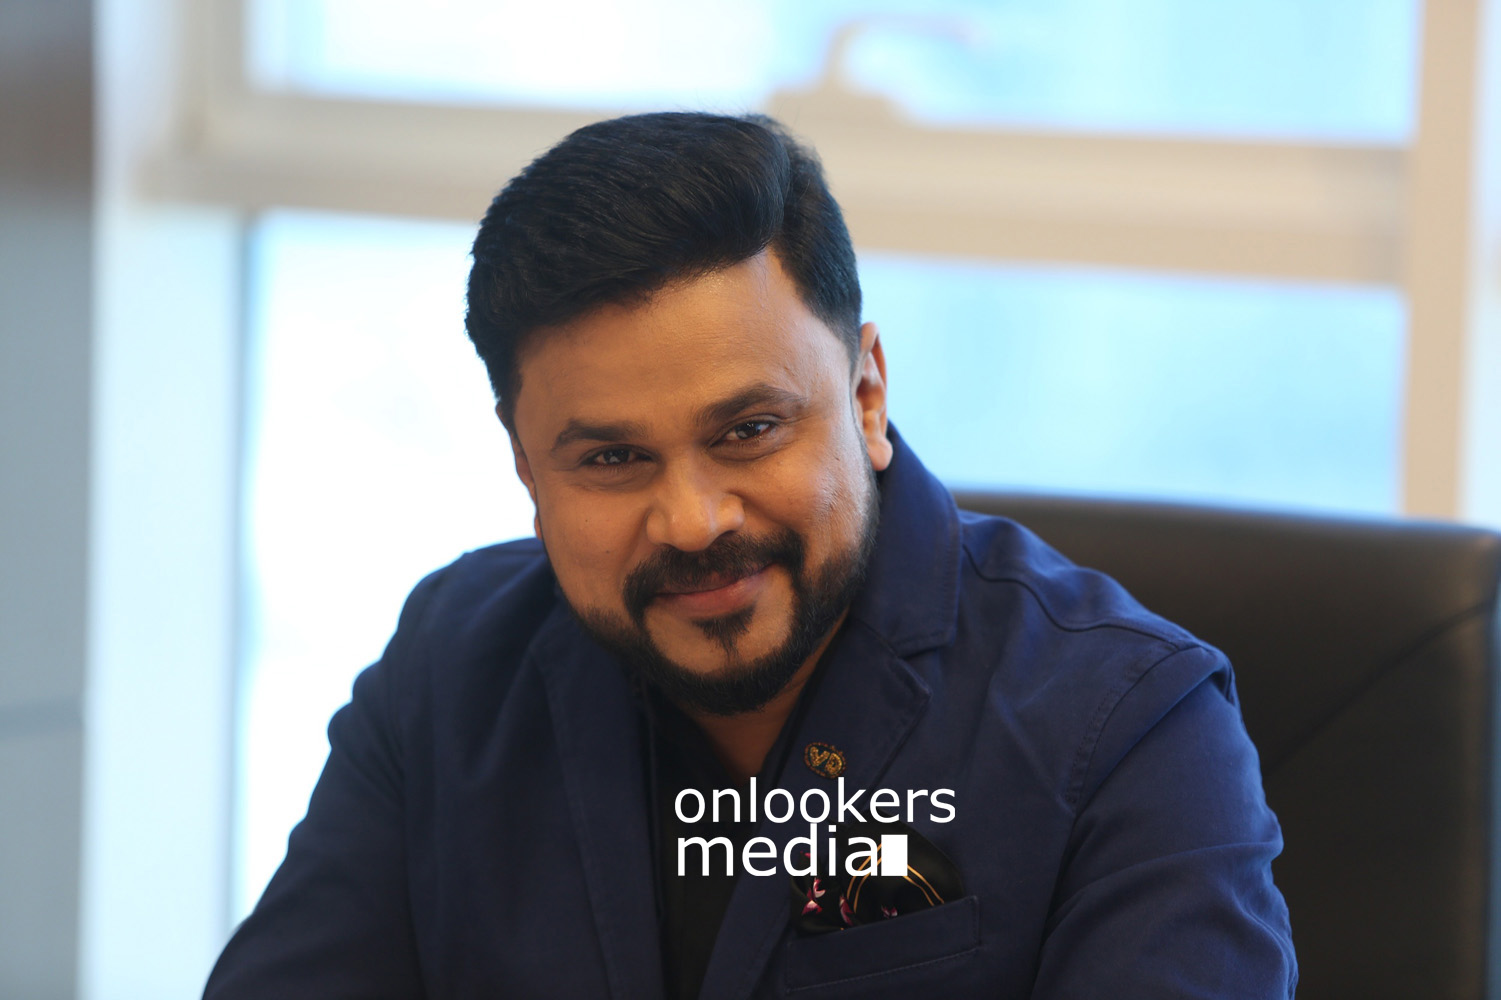 King Liar Stills, dileep in King Liar, siddique lal, madonna in King Liar, King Liar malayalam movie, King Liar movie stills, malayalam movie 2016, dileep stylish look,